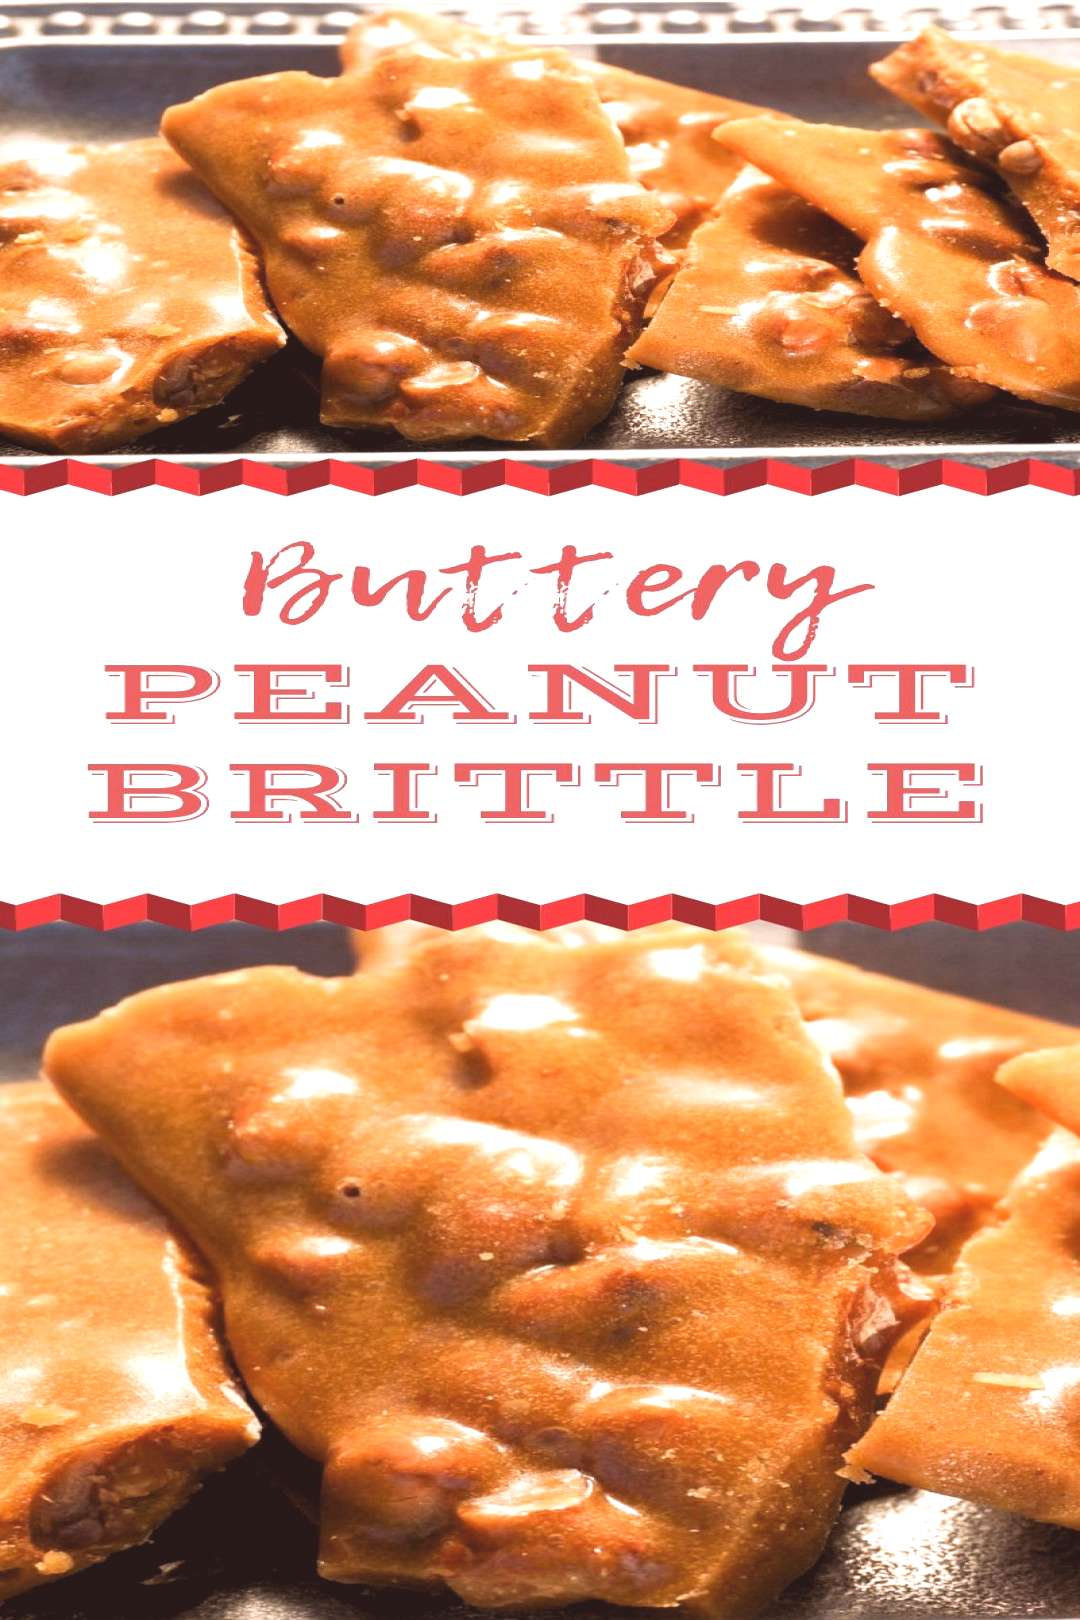 Peanut Brittle is a holiday classic but it's made even better when you add extra butter to the re